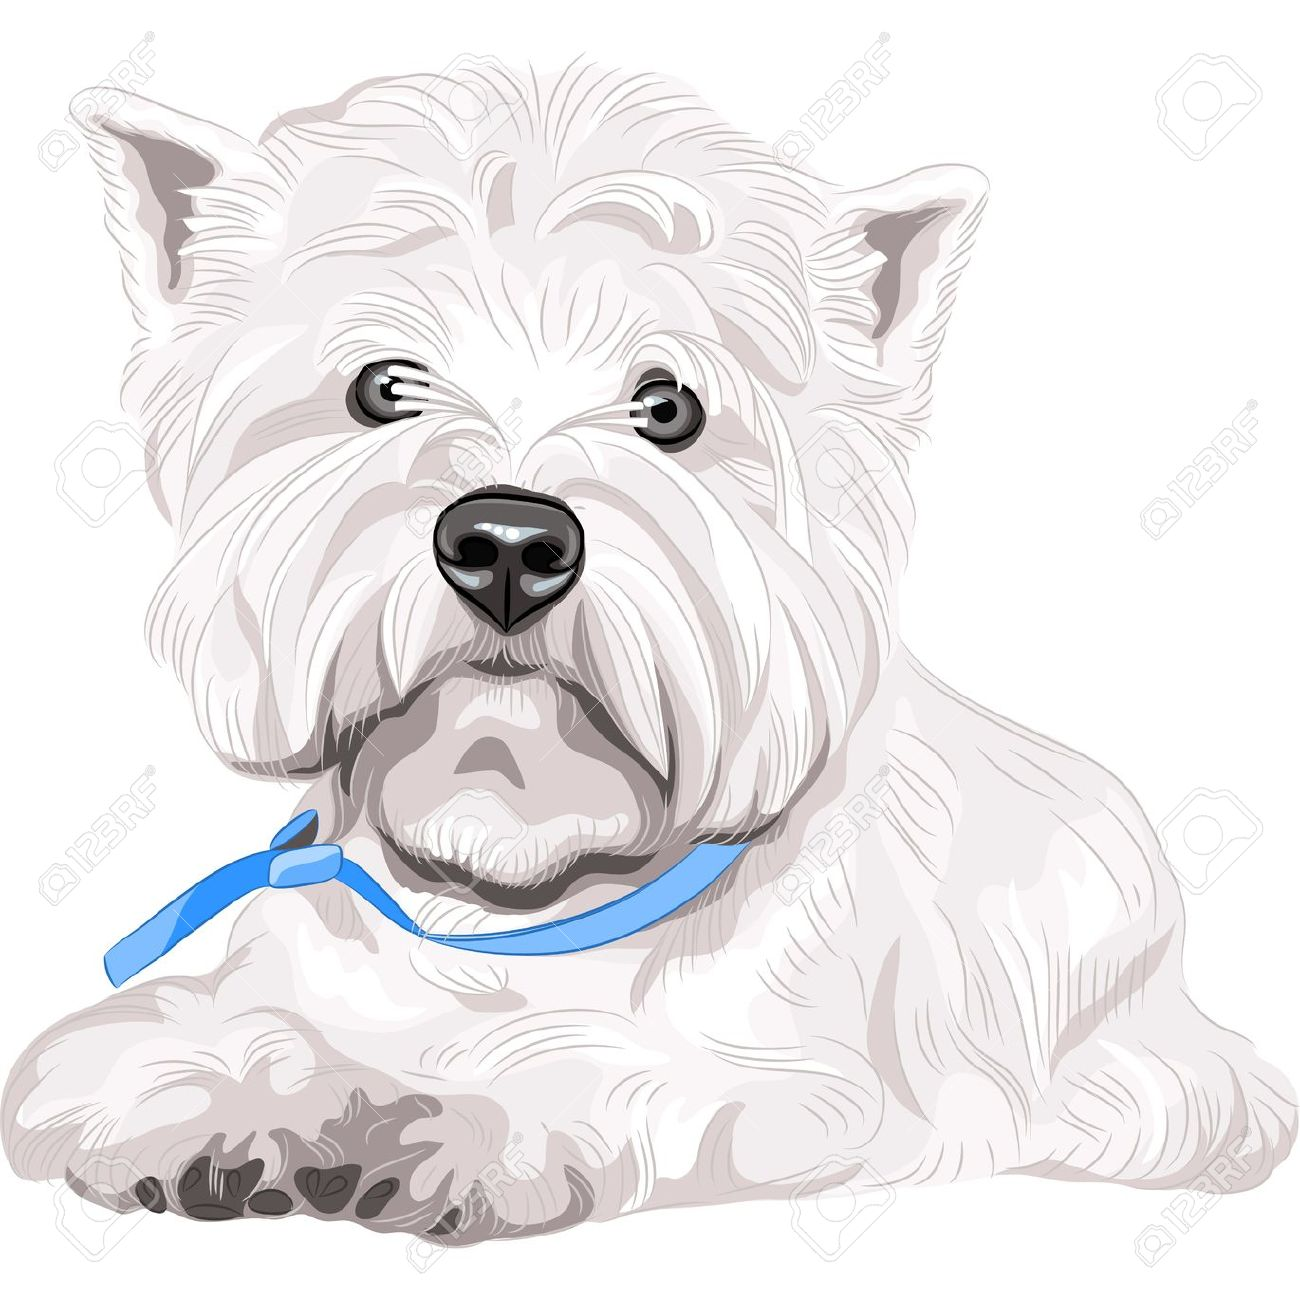 West highland white terrier coloring download west for Westie coloring pages